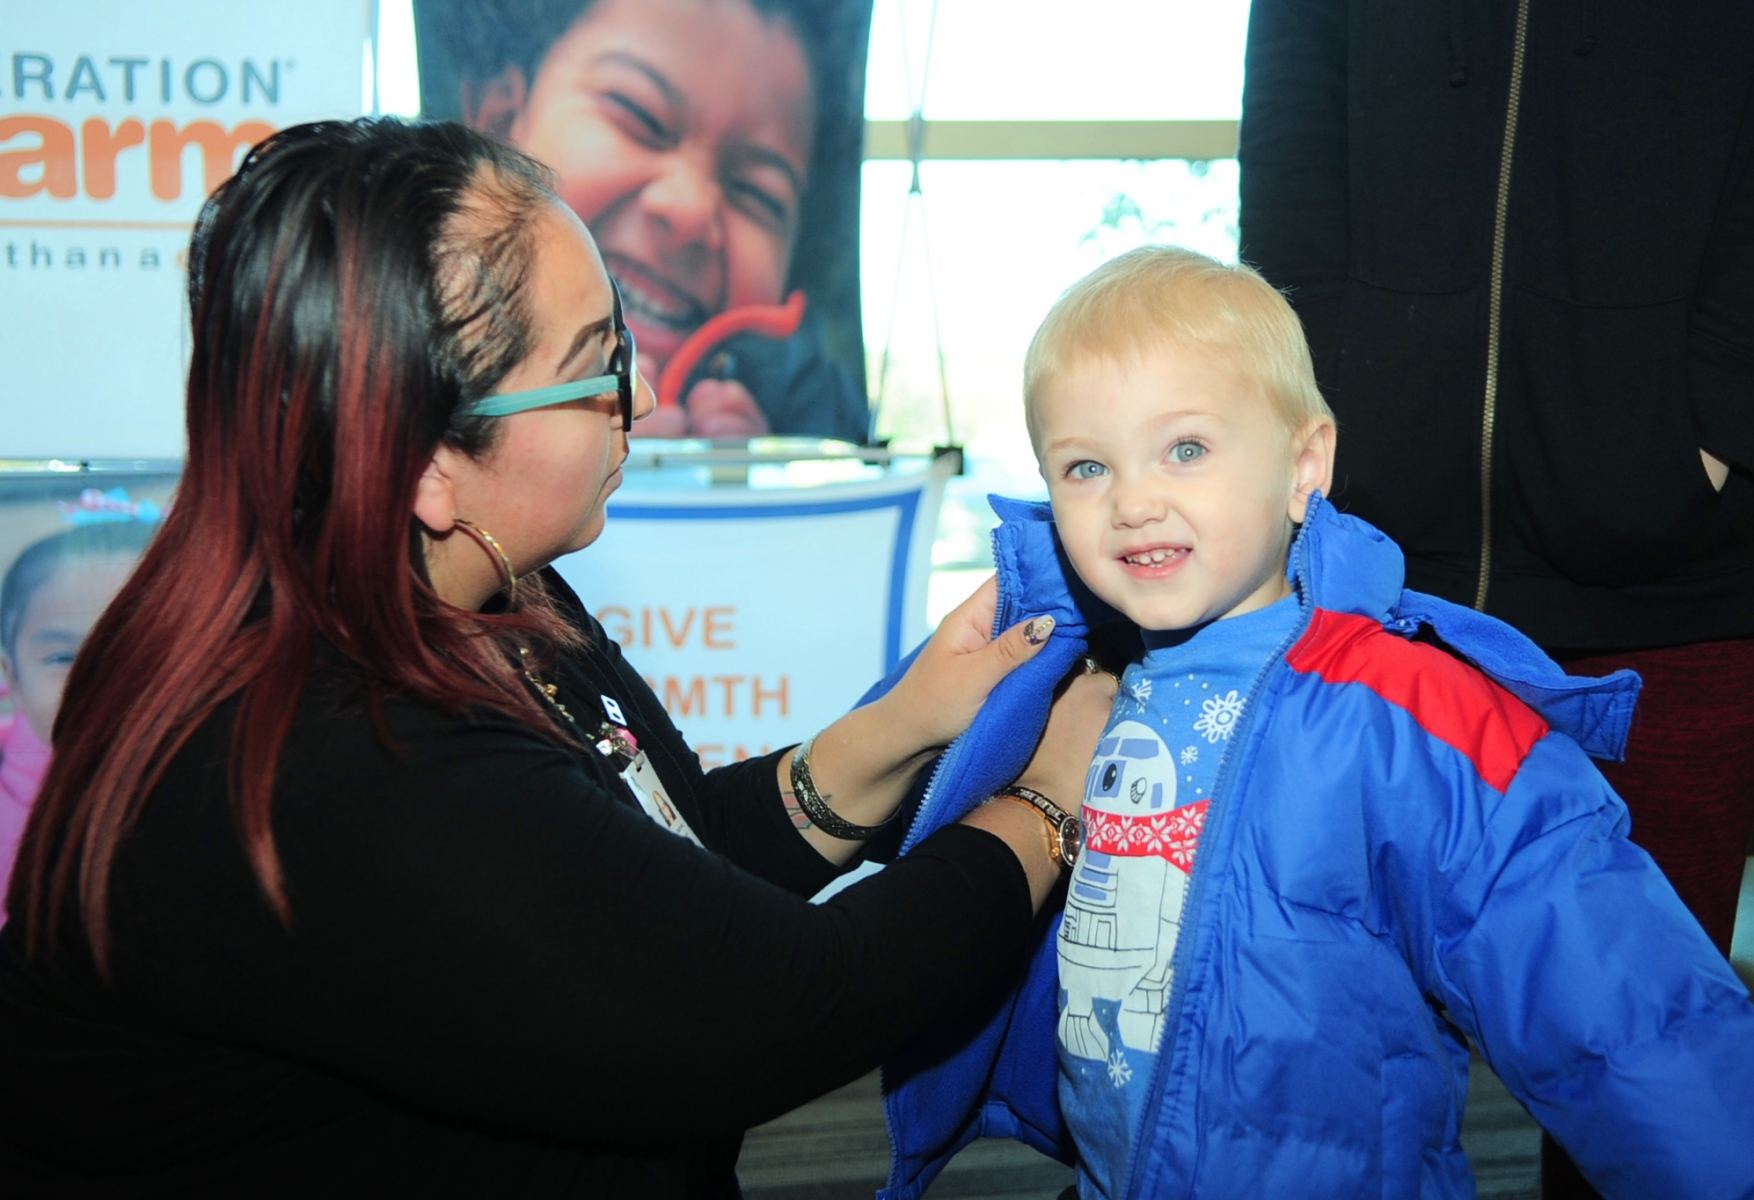 10-20-18 Aunt Martha's coat drive and flu shot campaign, Joliet IL Betsy Martinez from Aunt Martha's South Chicago clinic, helps young Dylan Wheeler (3) to find a fitting free winter coat donated by Operation Warm. Photo by John Booz